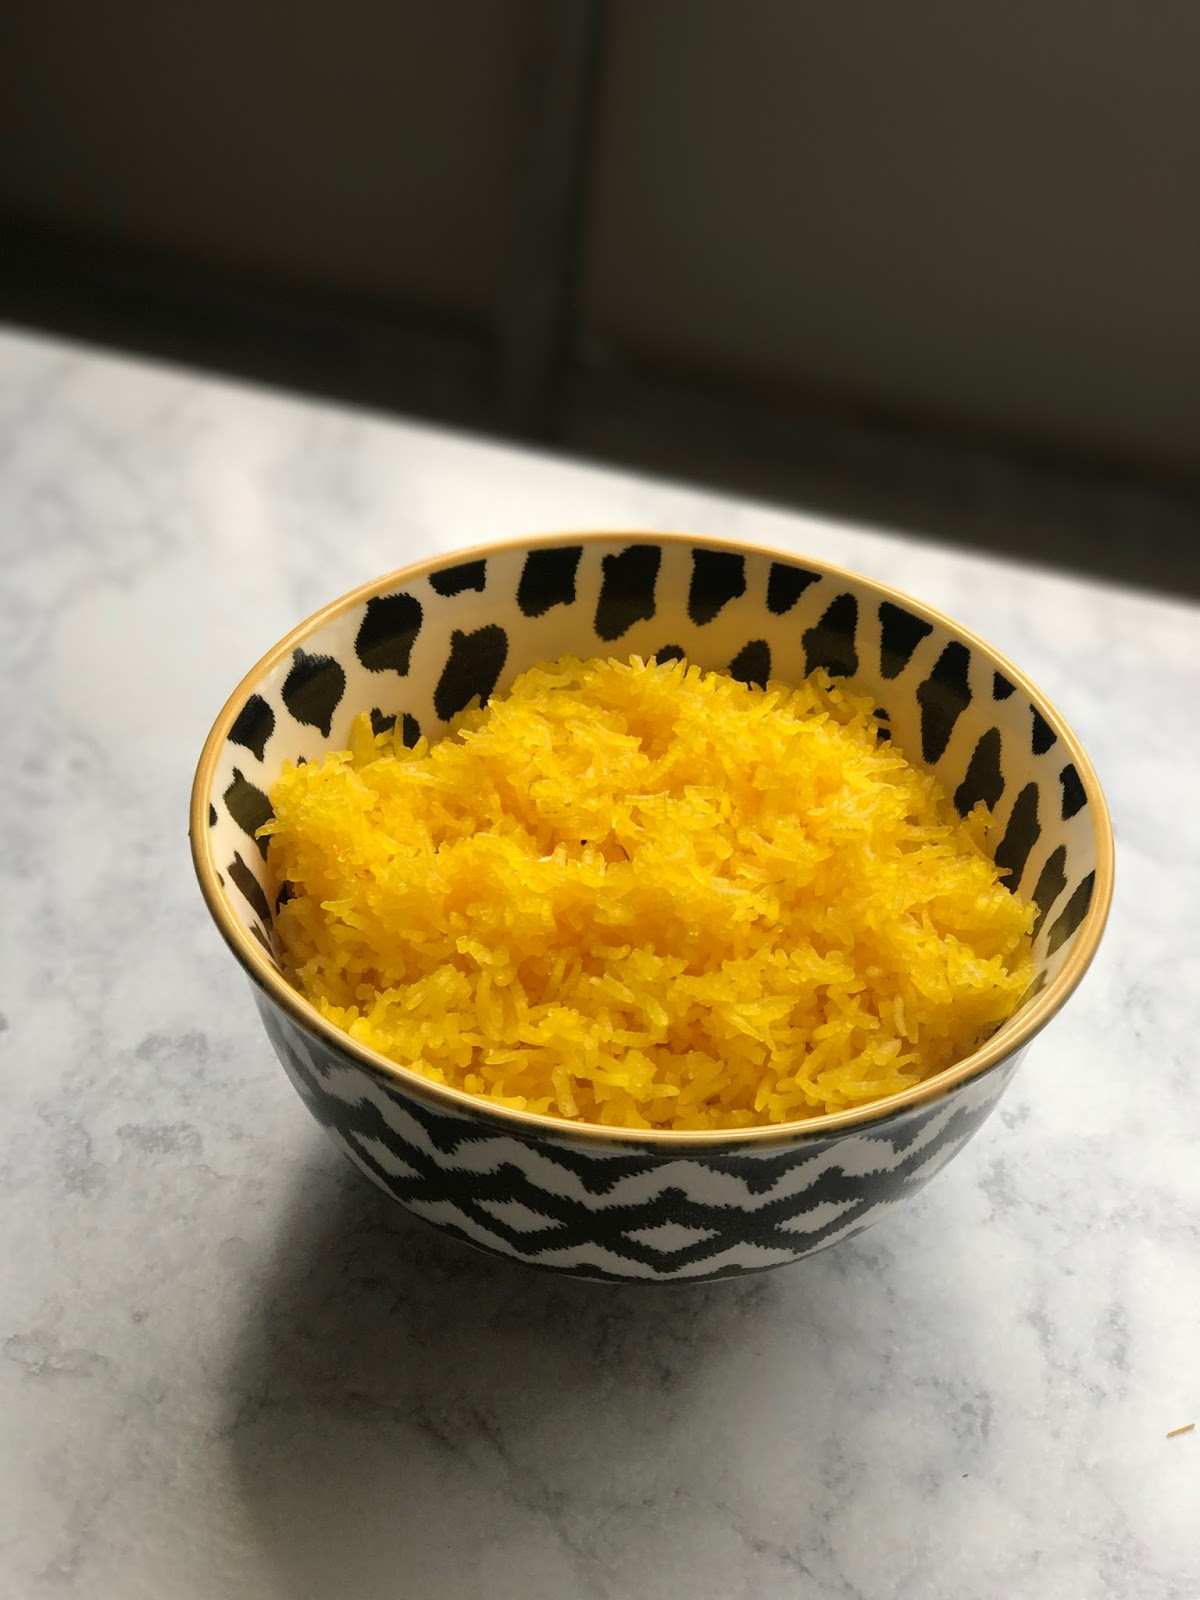 delicious pakistani zarda - sweet rice